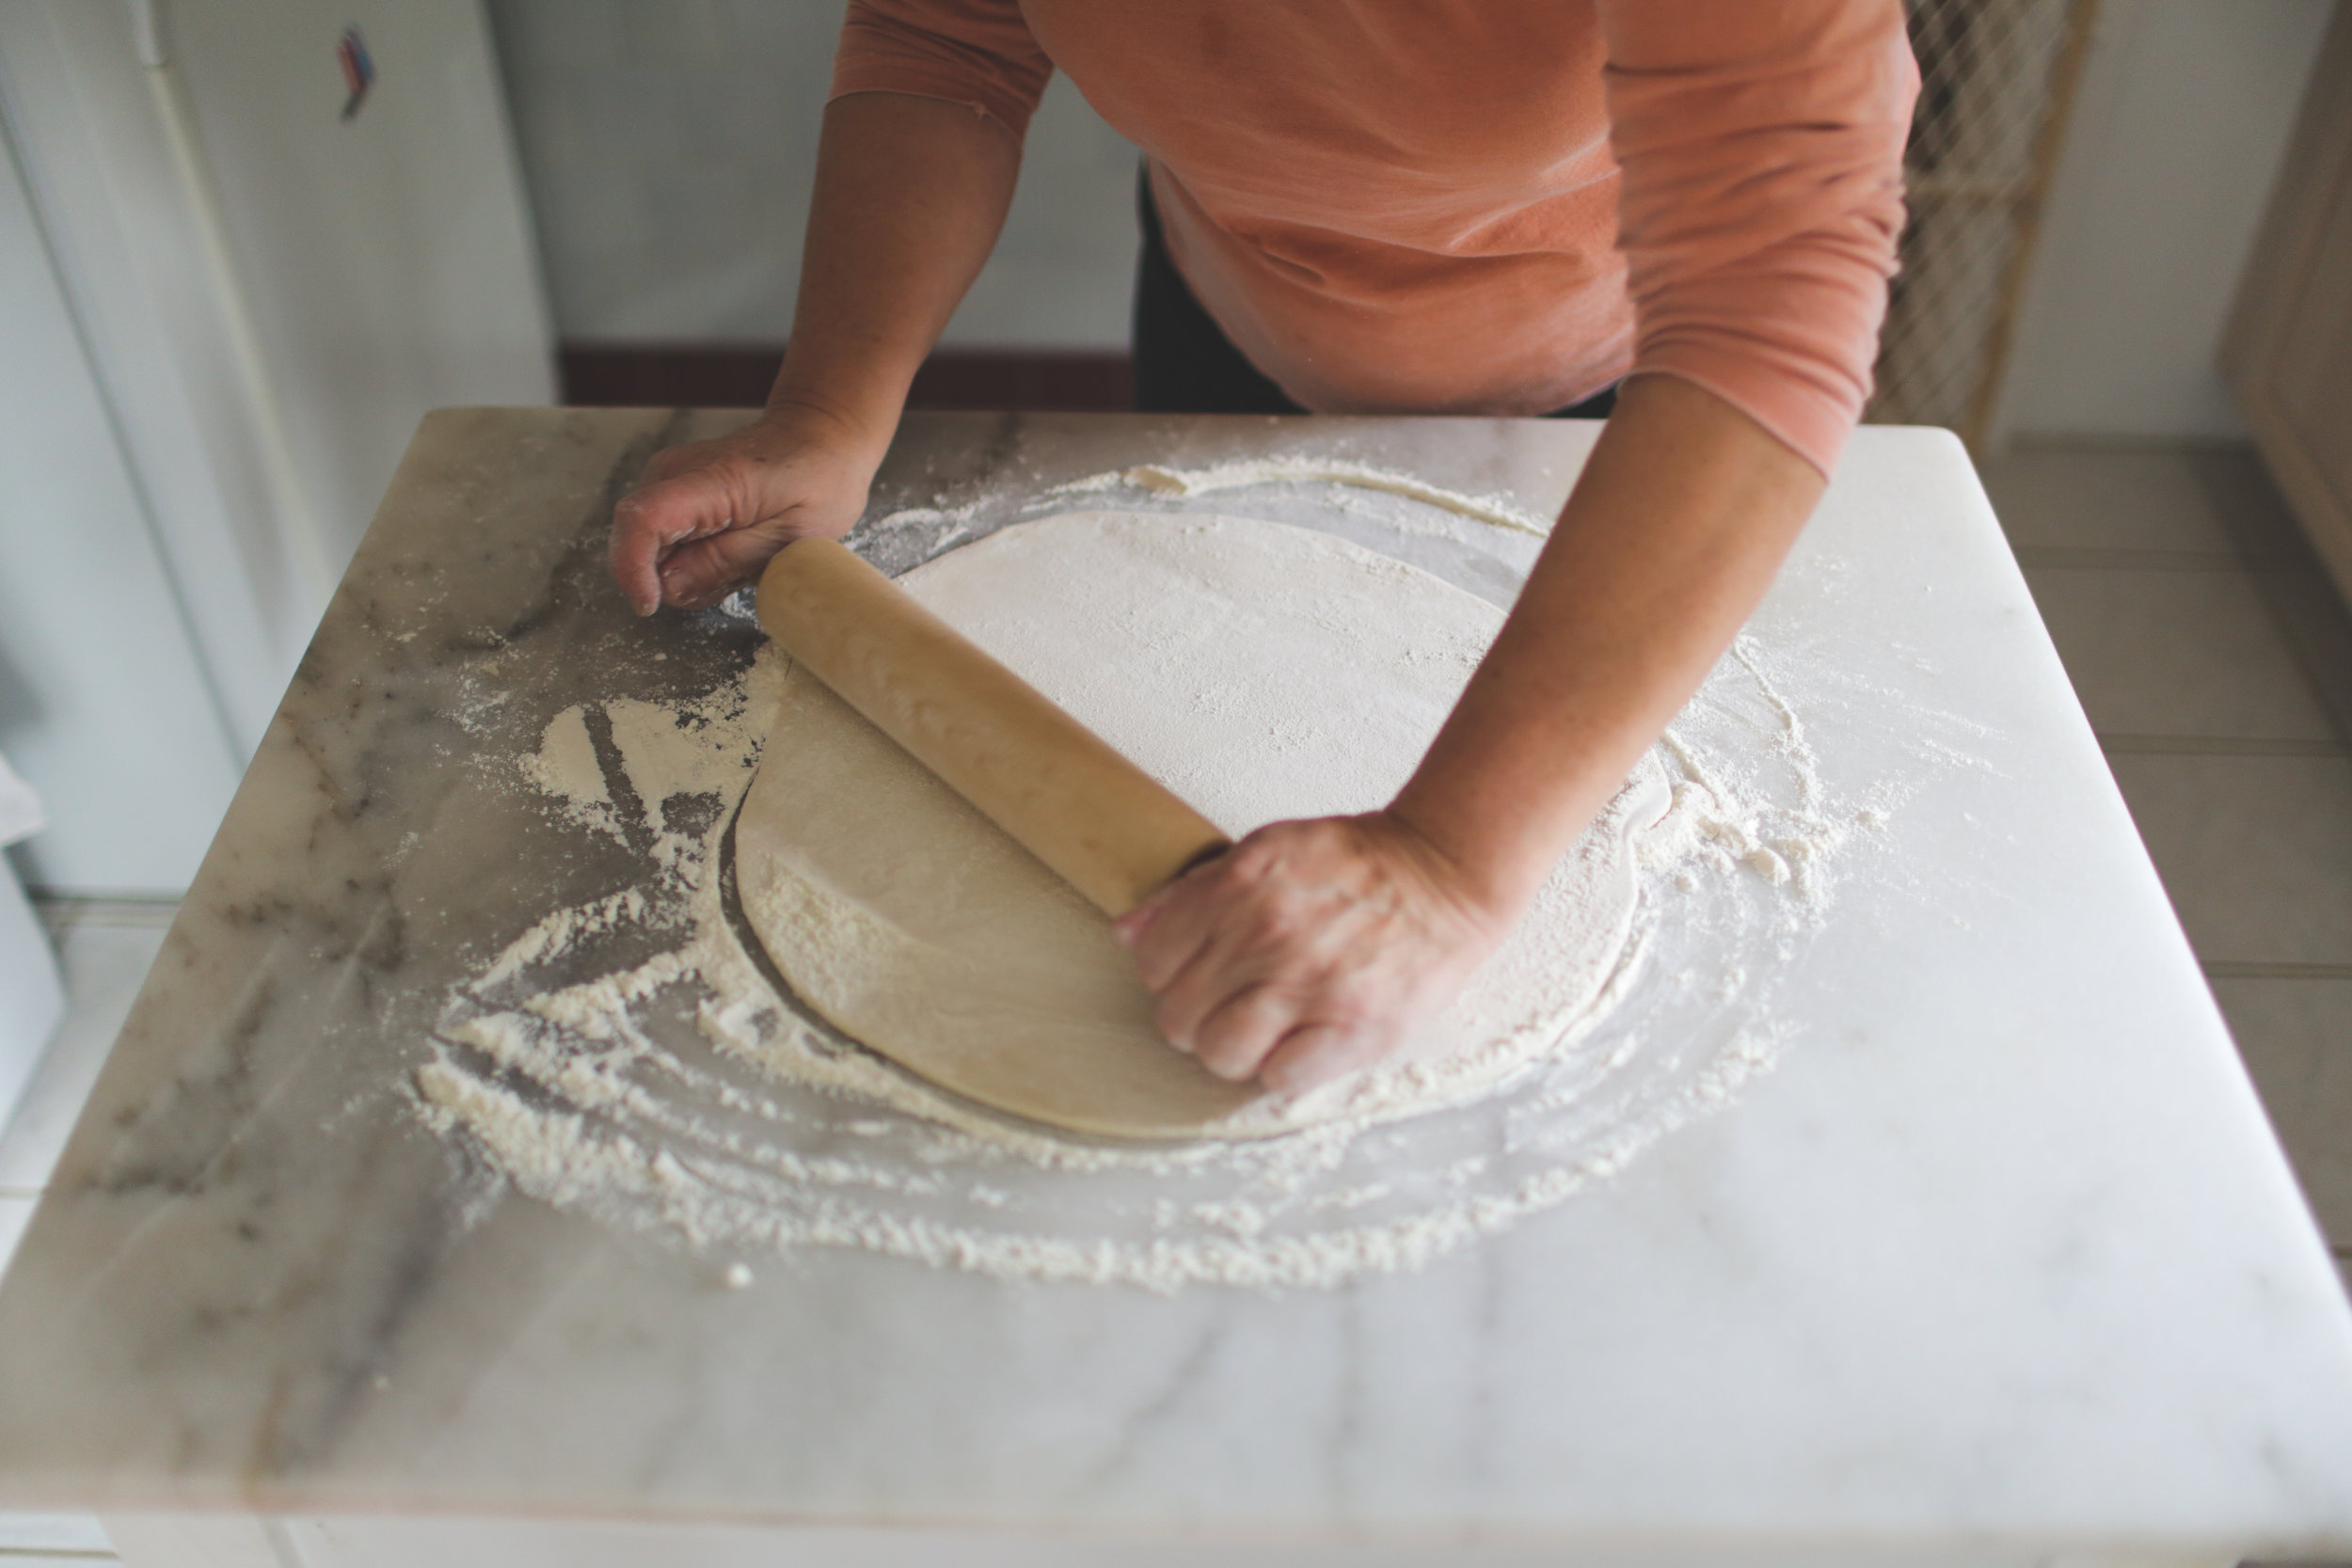 11. Roll out dough into a large circle.